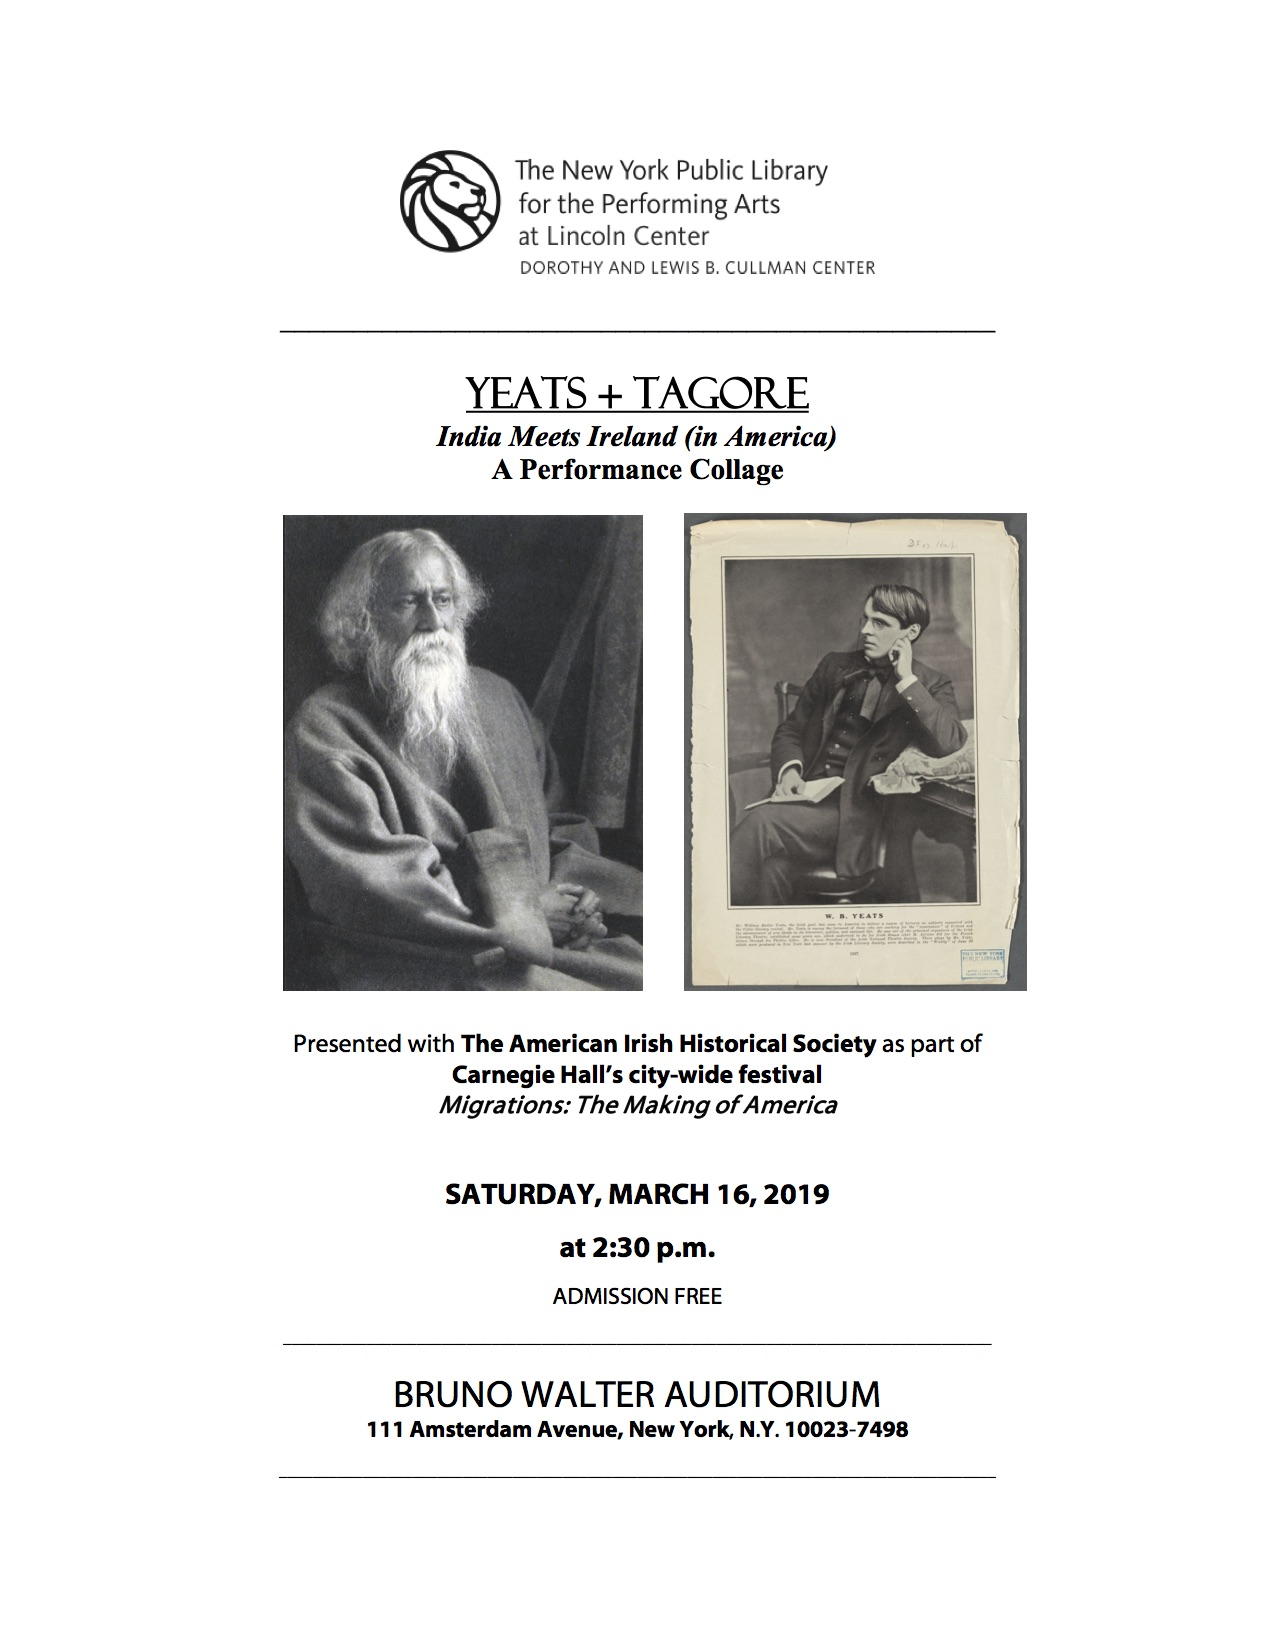 Yeats + Tagore: India Meets Ireland, A Performance Collage